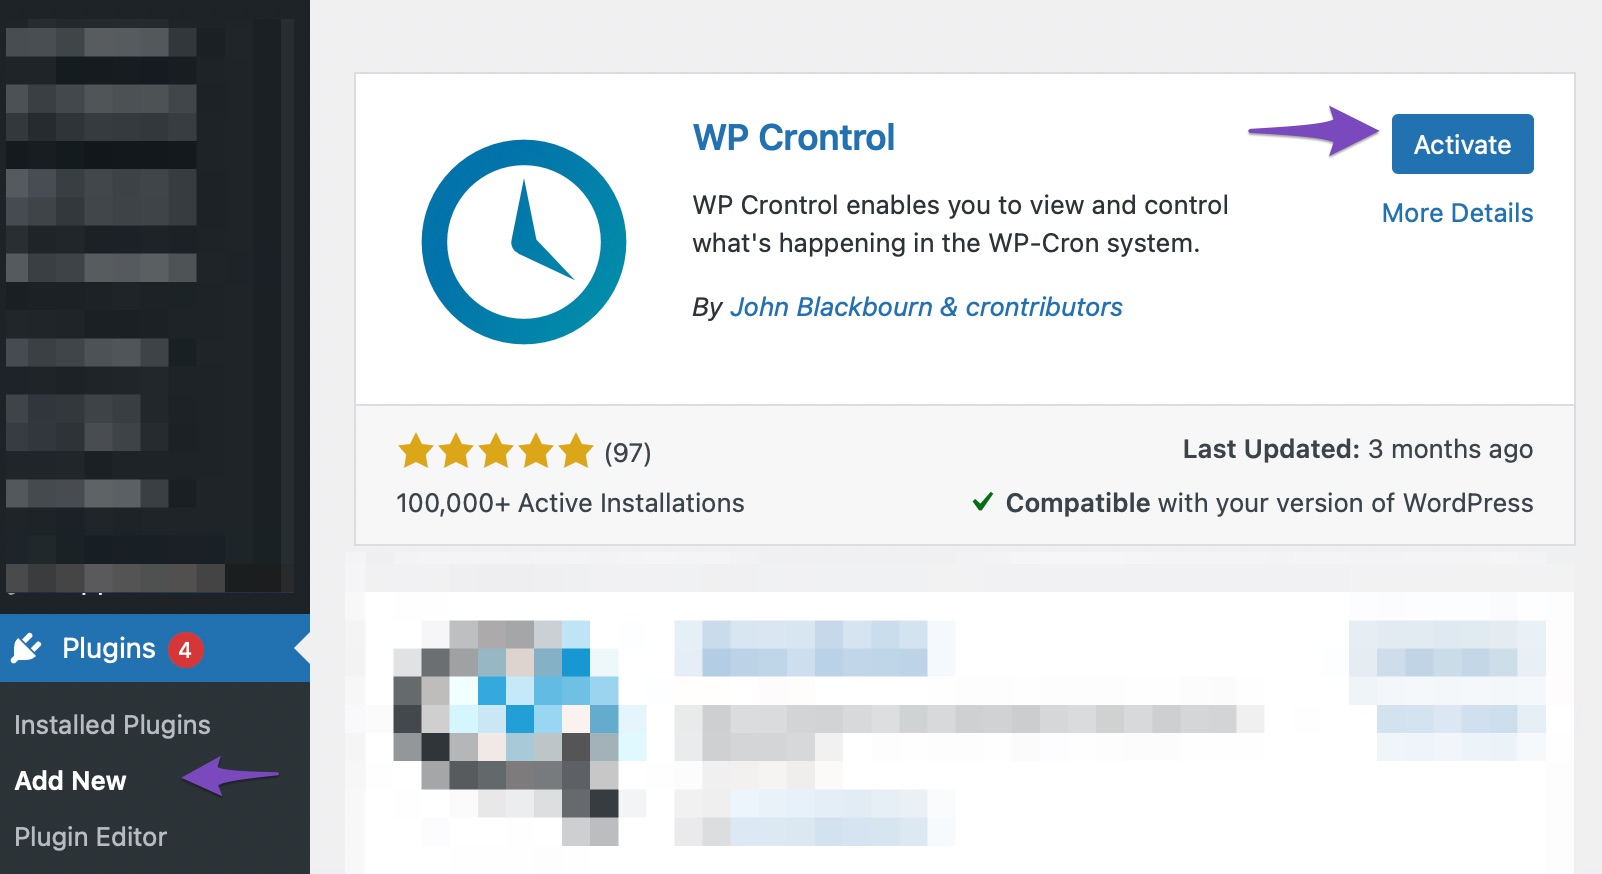 Install and Activate WP Crontrol plugin